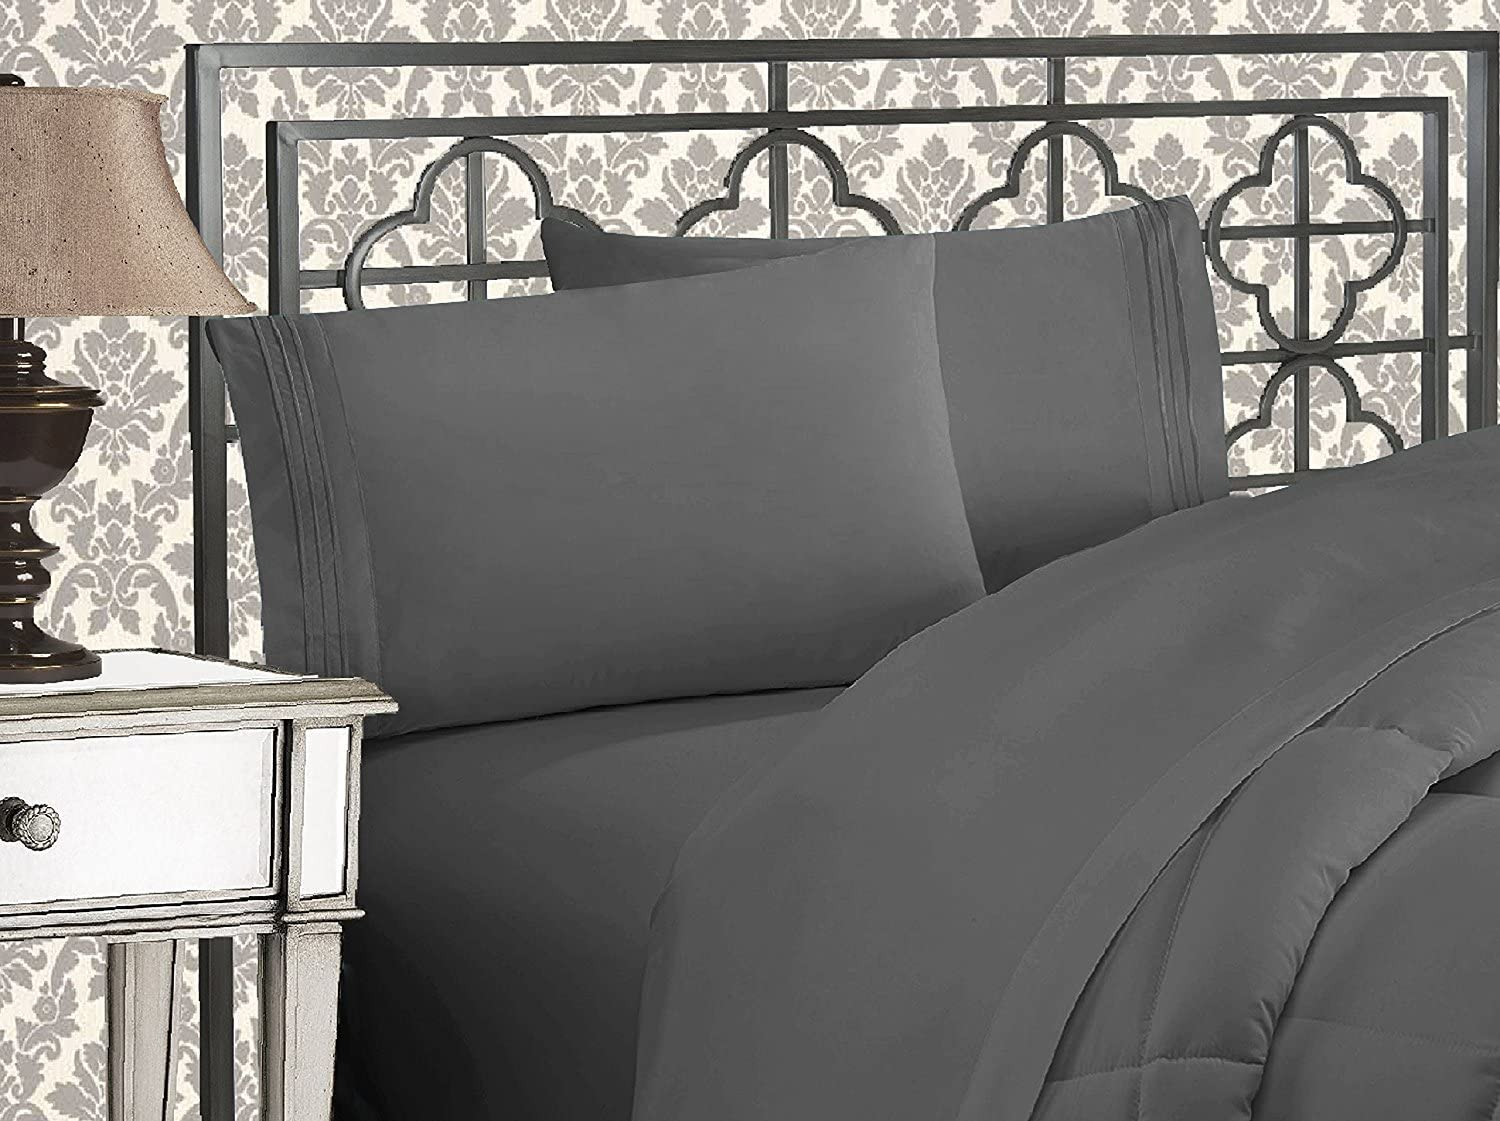 Elegant Comfort 1500 Thread Count Wrinkle & Fade Resistant Egyptian Quality Ultra Soft Luxurious 4-Piece Bed Sheet Set 100% Hypoallergenic with Deep Pockets, Queen, Gray